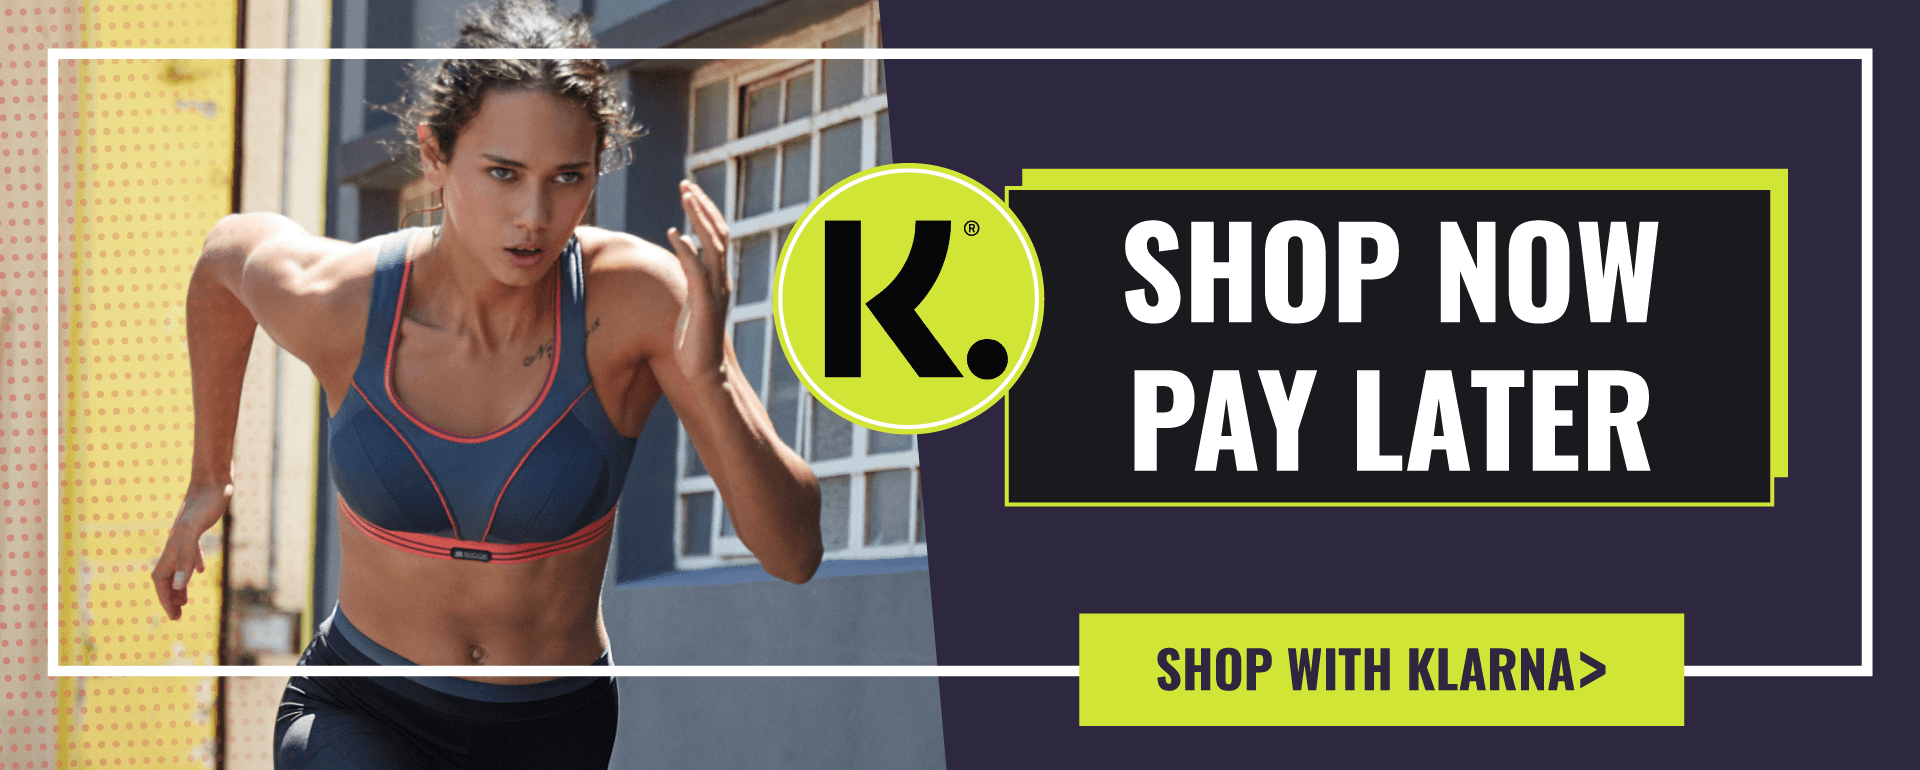 Shop Now Pay Later Klarna